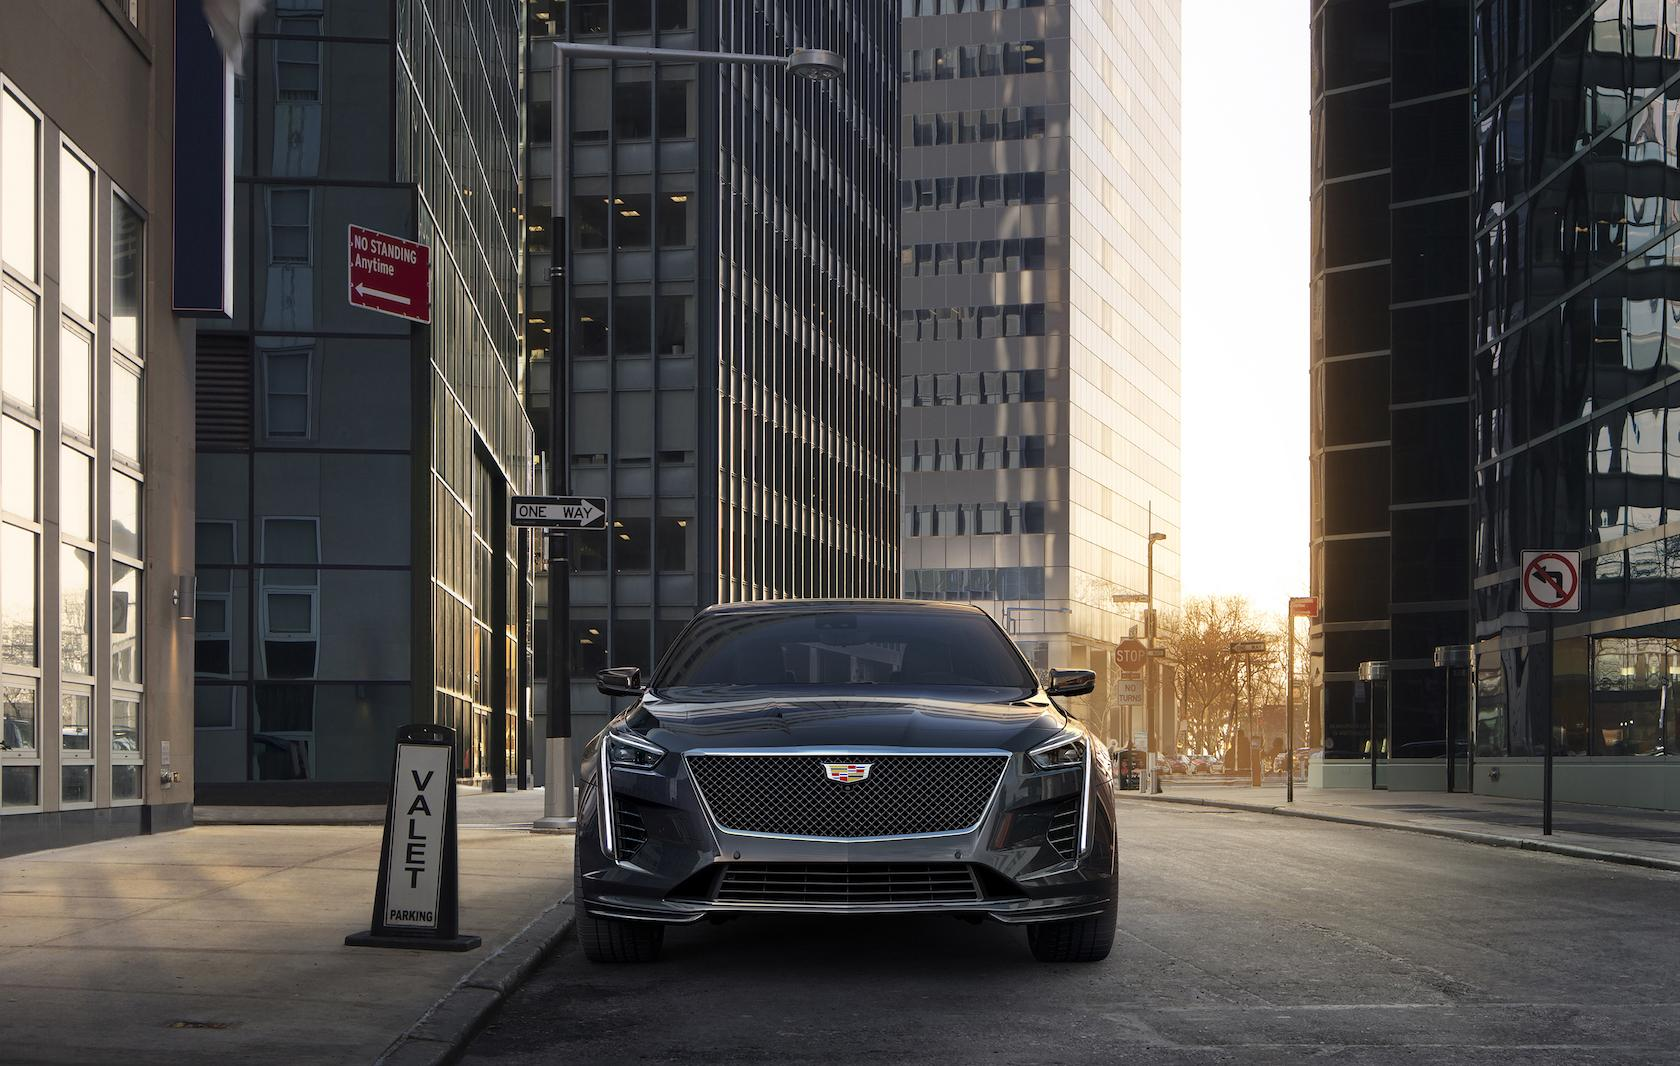 2019 Cadillac CT6 V-Sport is a glorious 550hp AWD beast